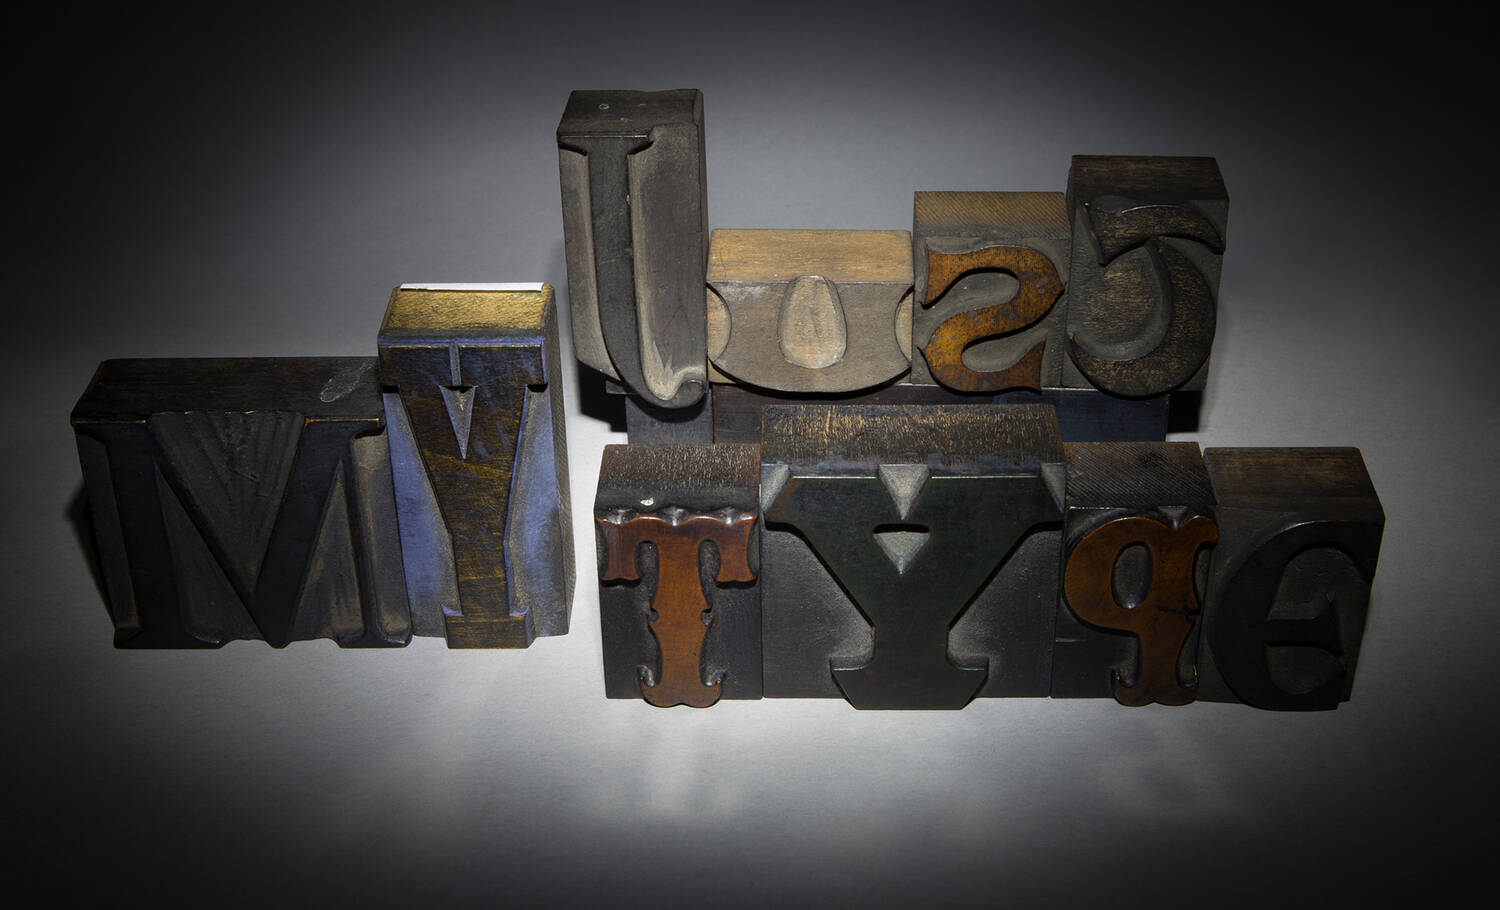 'Just My Type' compiled from fonts in the collection at Robert Smail's Printing Works